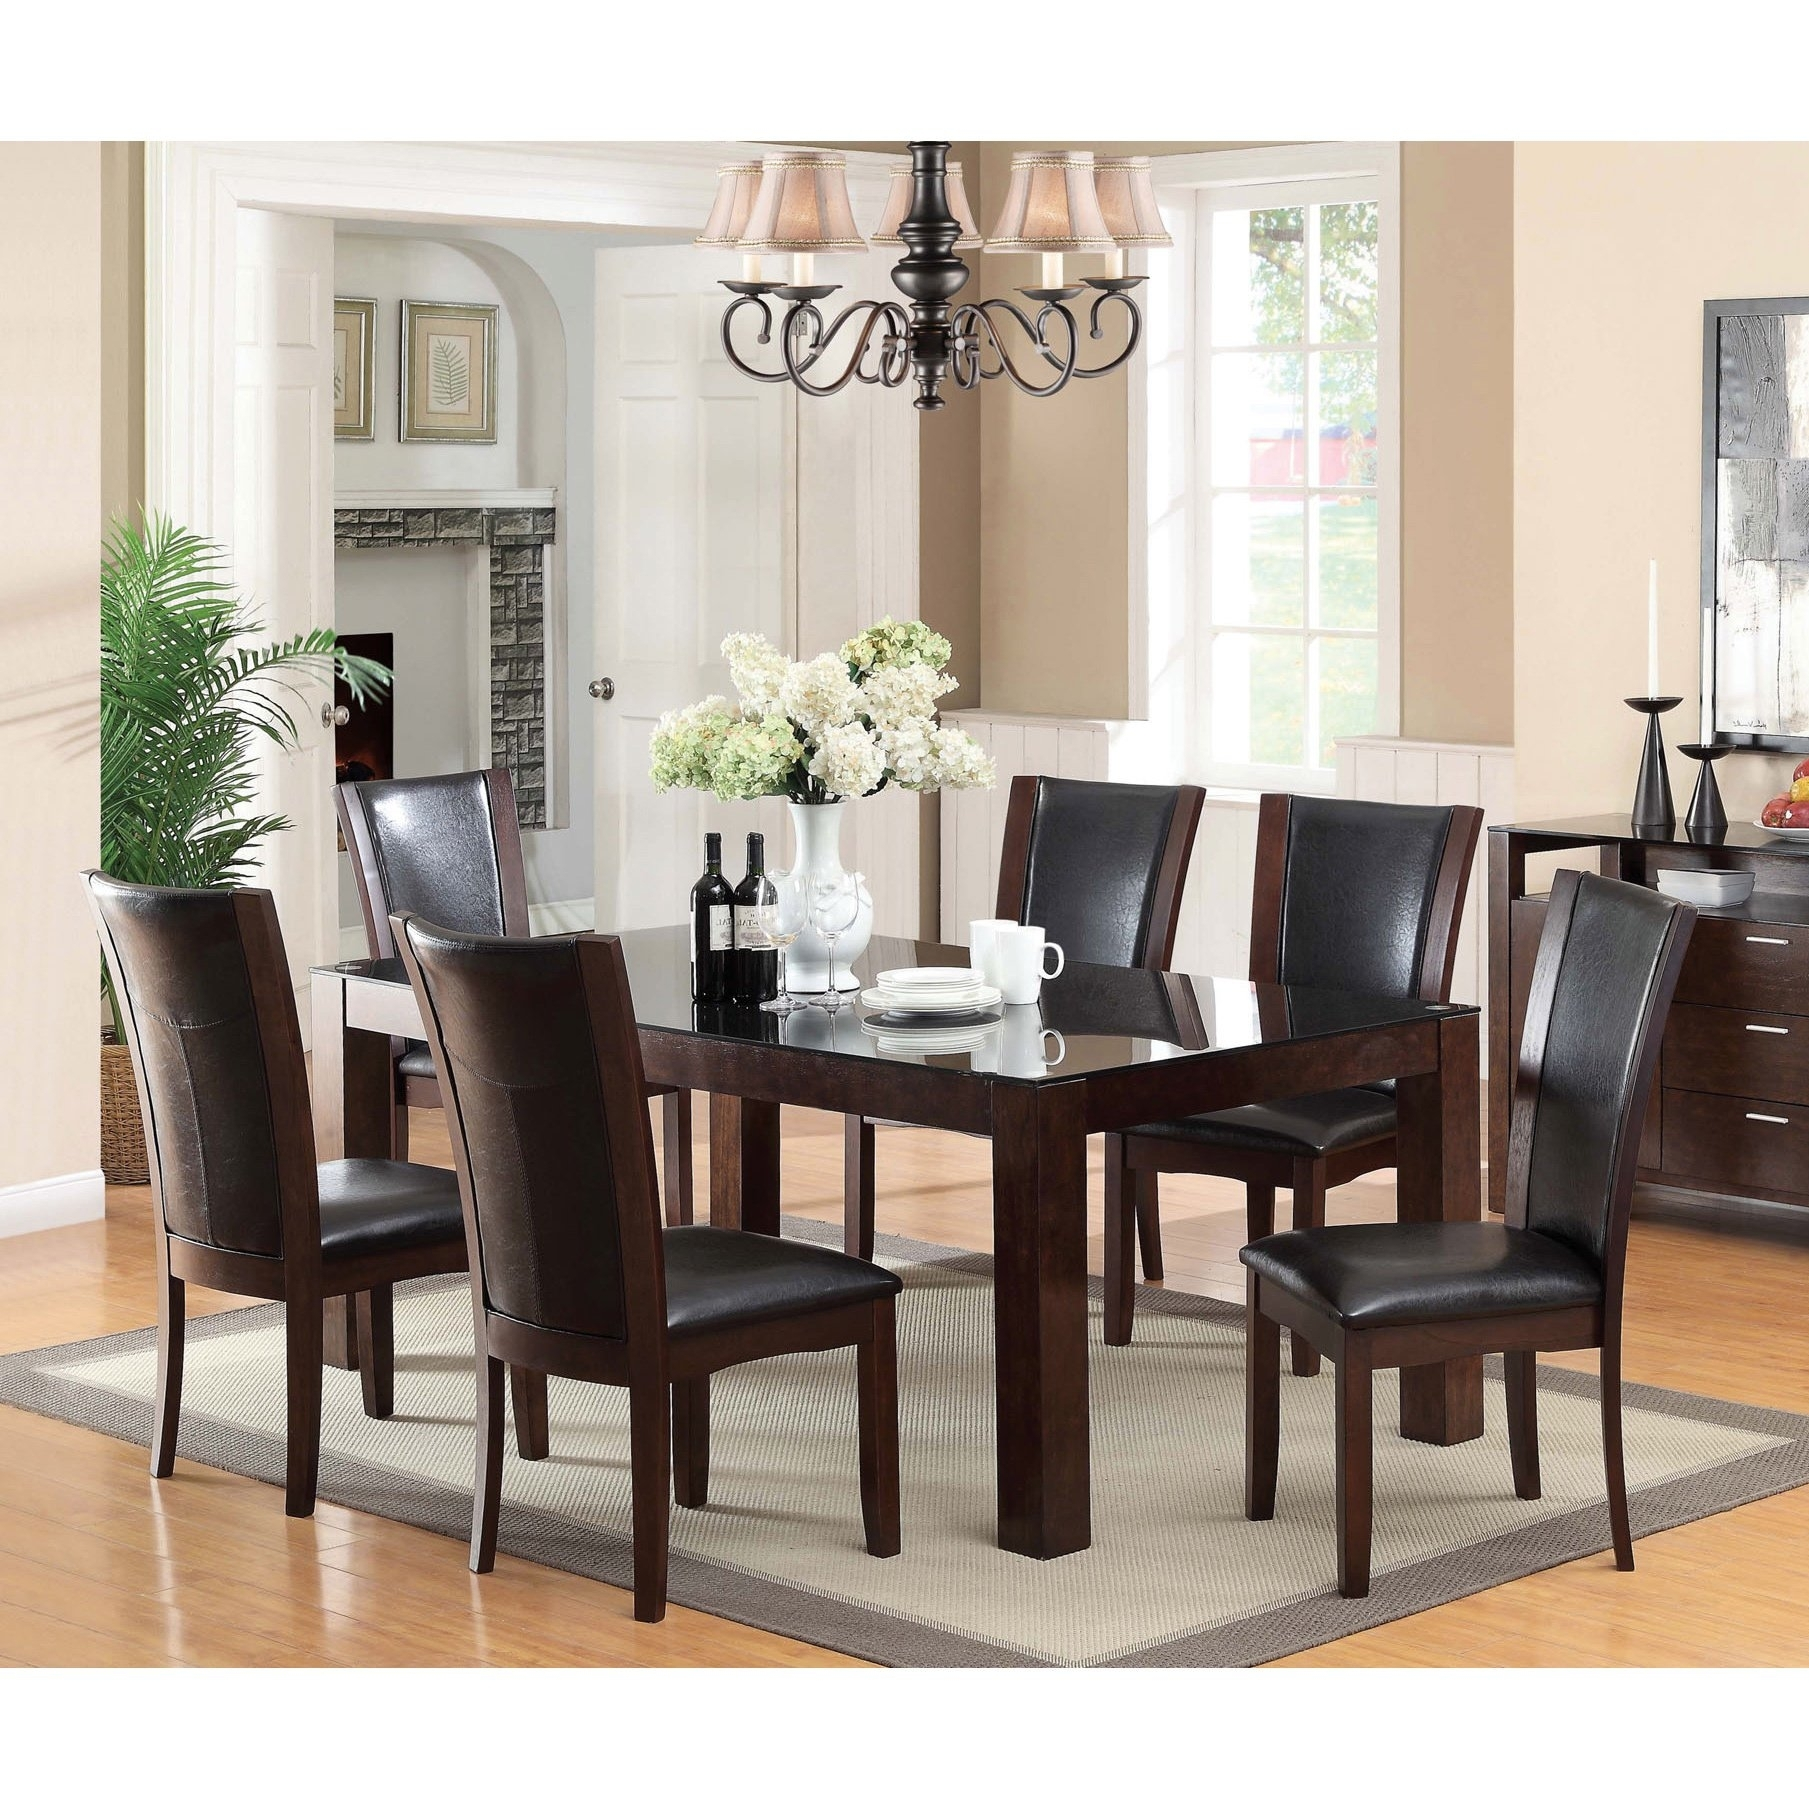 Furniture Of America Byzantia 7 Piece Tempered Glass Dining Set Throughout Most Recent Gavin 7 Piece Dining Sets With Clint Side Chairs (Photo 19 of 20)